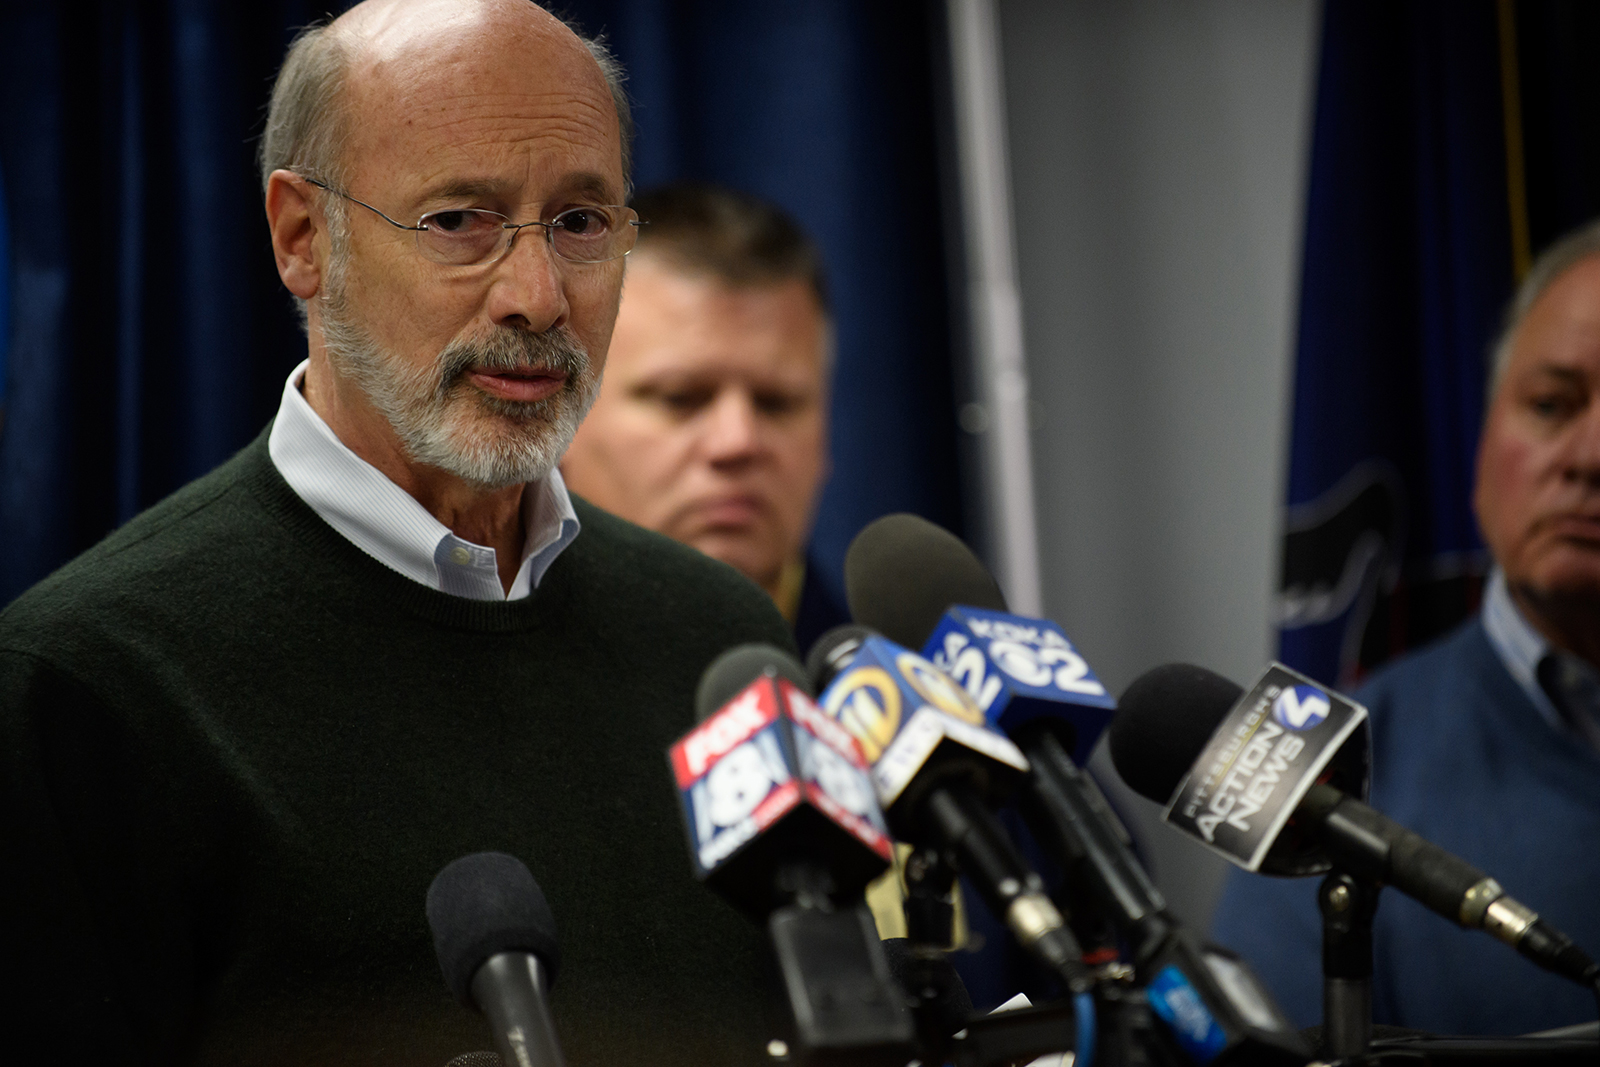 Pennsylvania Governor Tom Wolf pictured on October 27, 2018 in Pittsburgh, Pennsylvania.